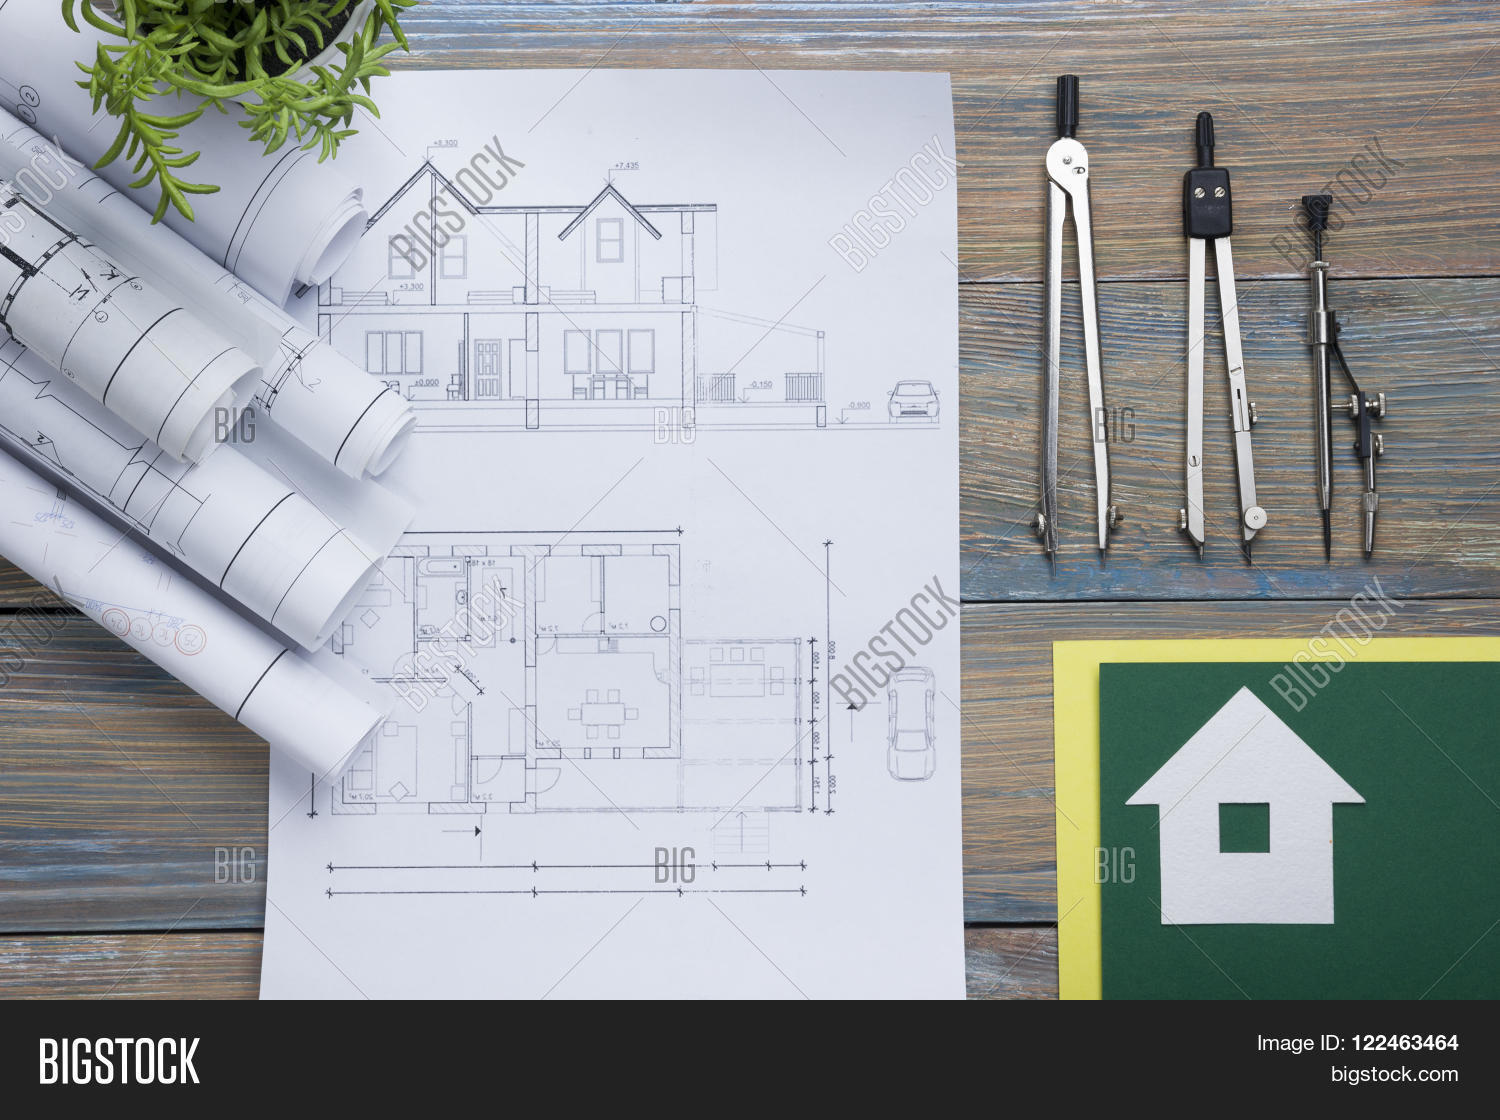 Vintage Architectural Blueprints Real Estate Concept Image Photo Free Trial Bigstock